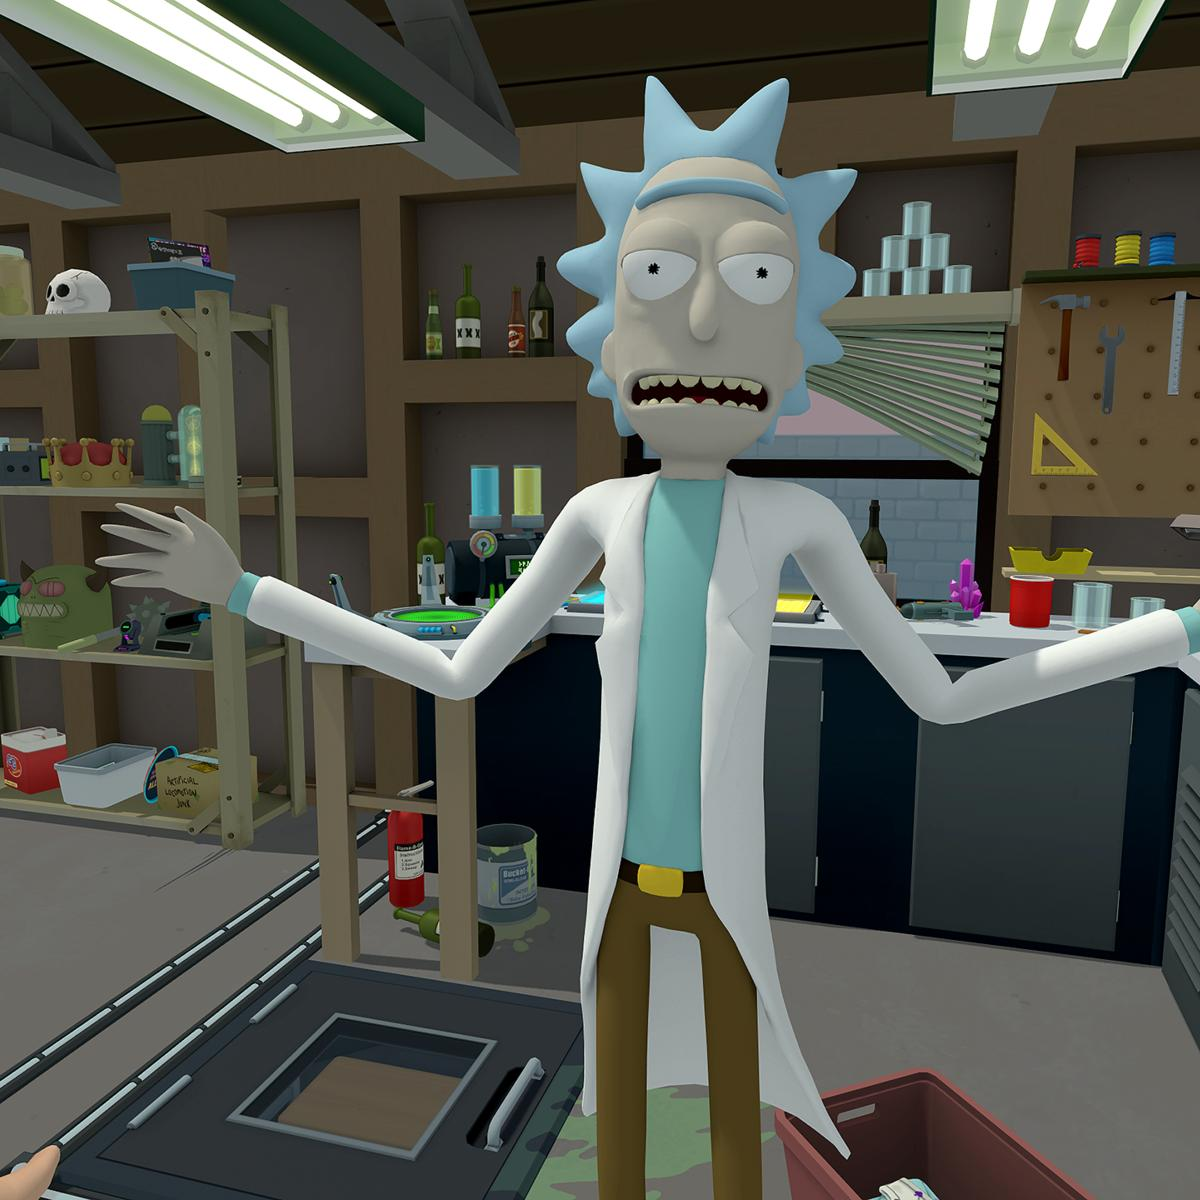 rick_screenshot.png